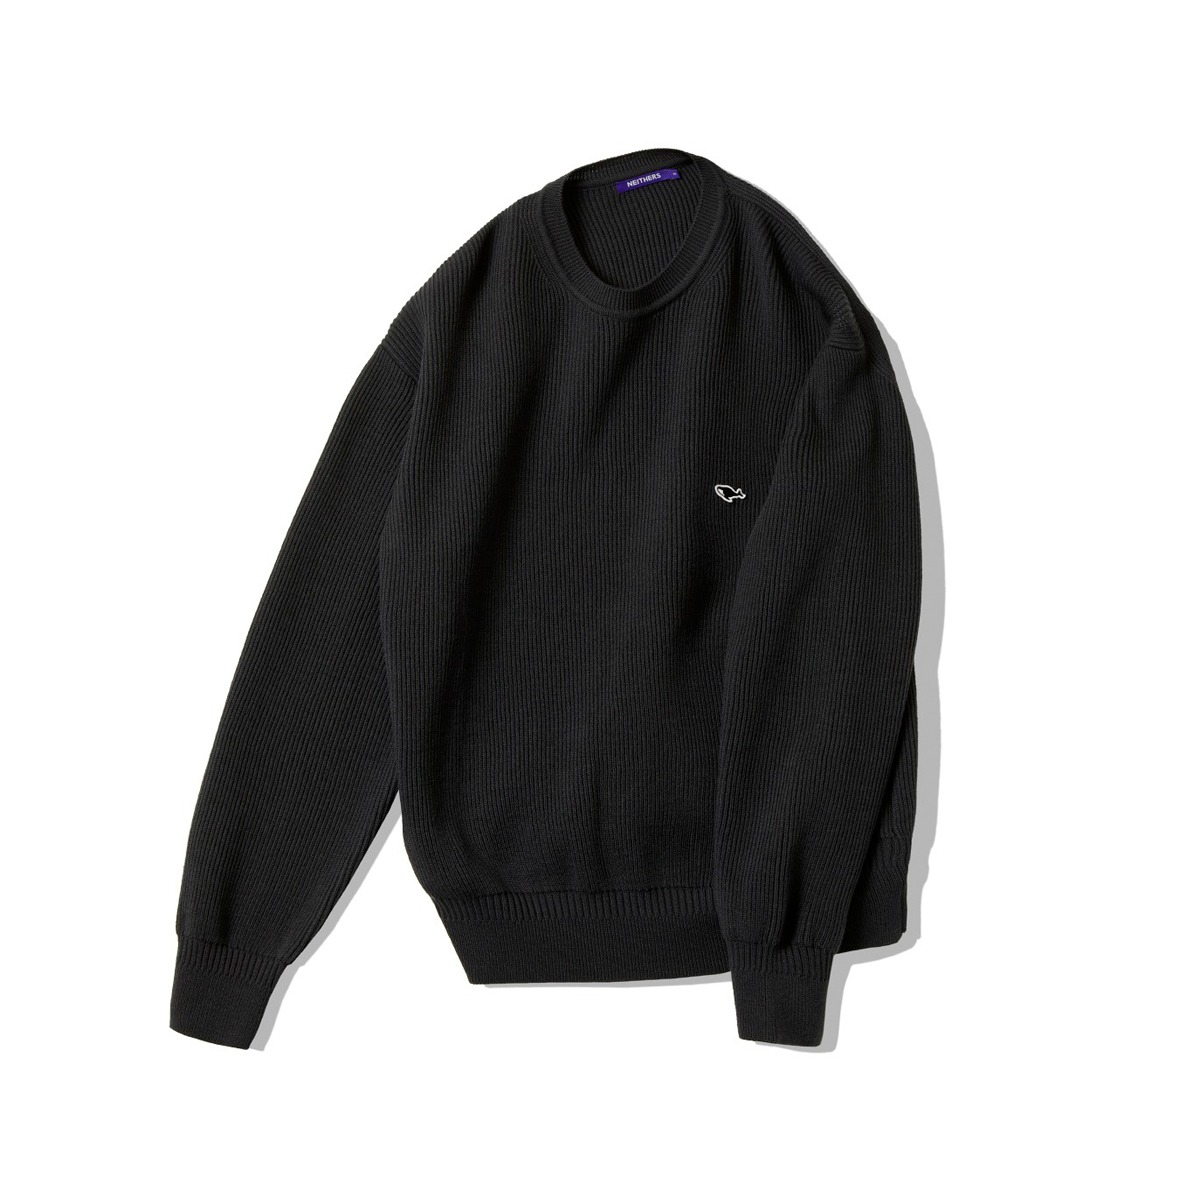 [NEITHERS] D5002-1 KNITTED SWEAT SHIRT 'CHARCOAL'